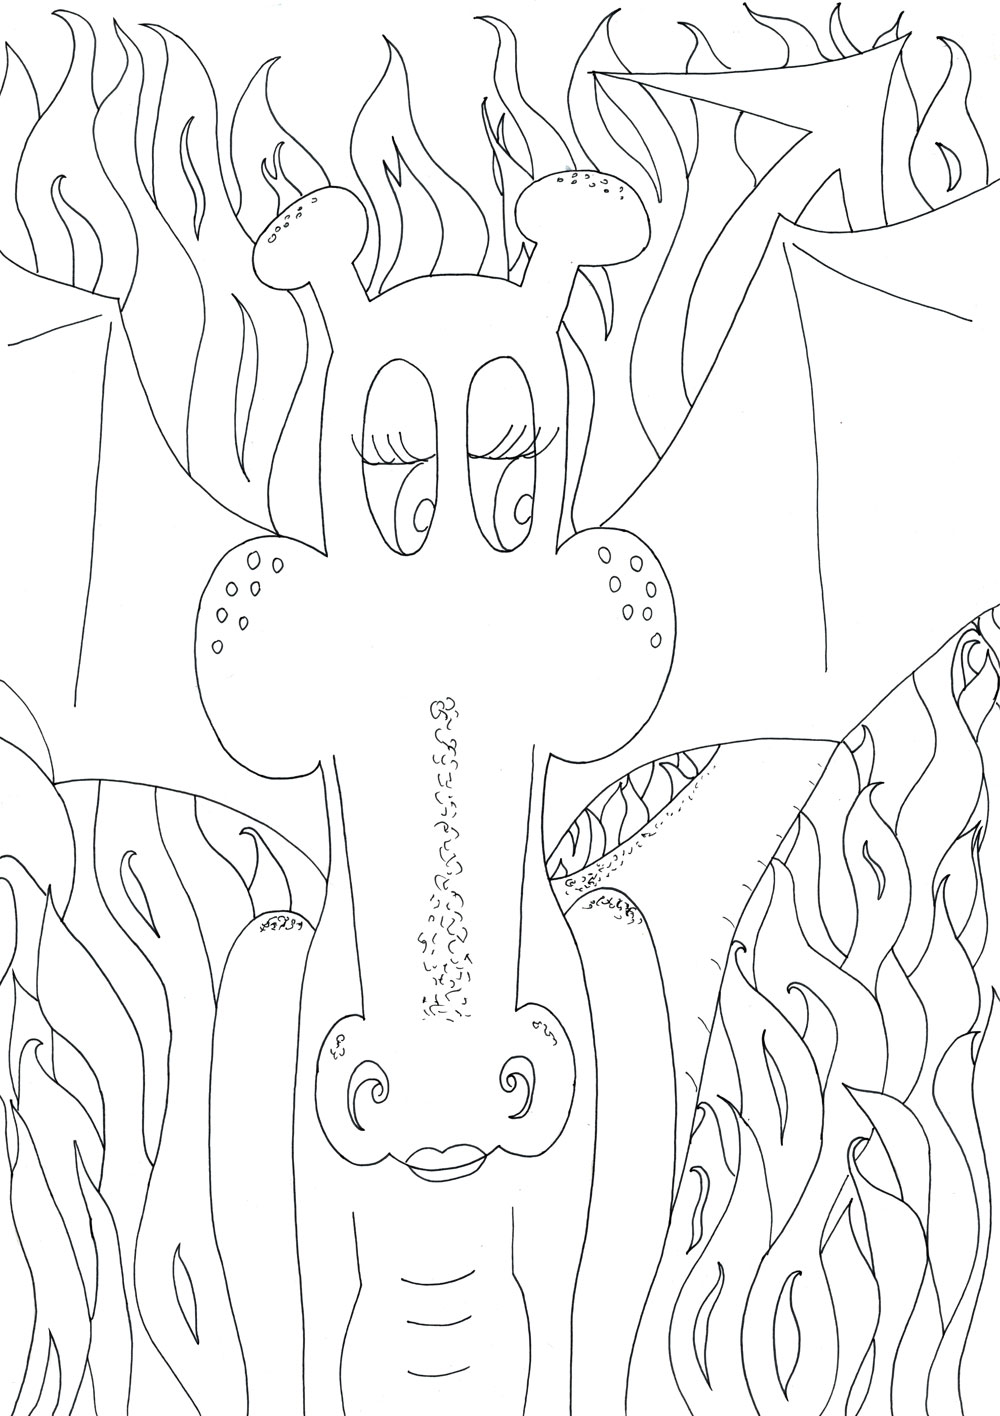 A gorgeous colouring in page of a dragon surrounded by its flames